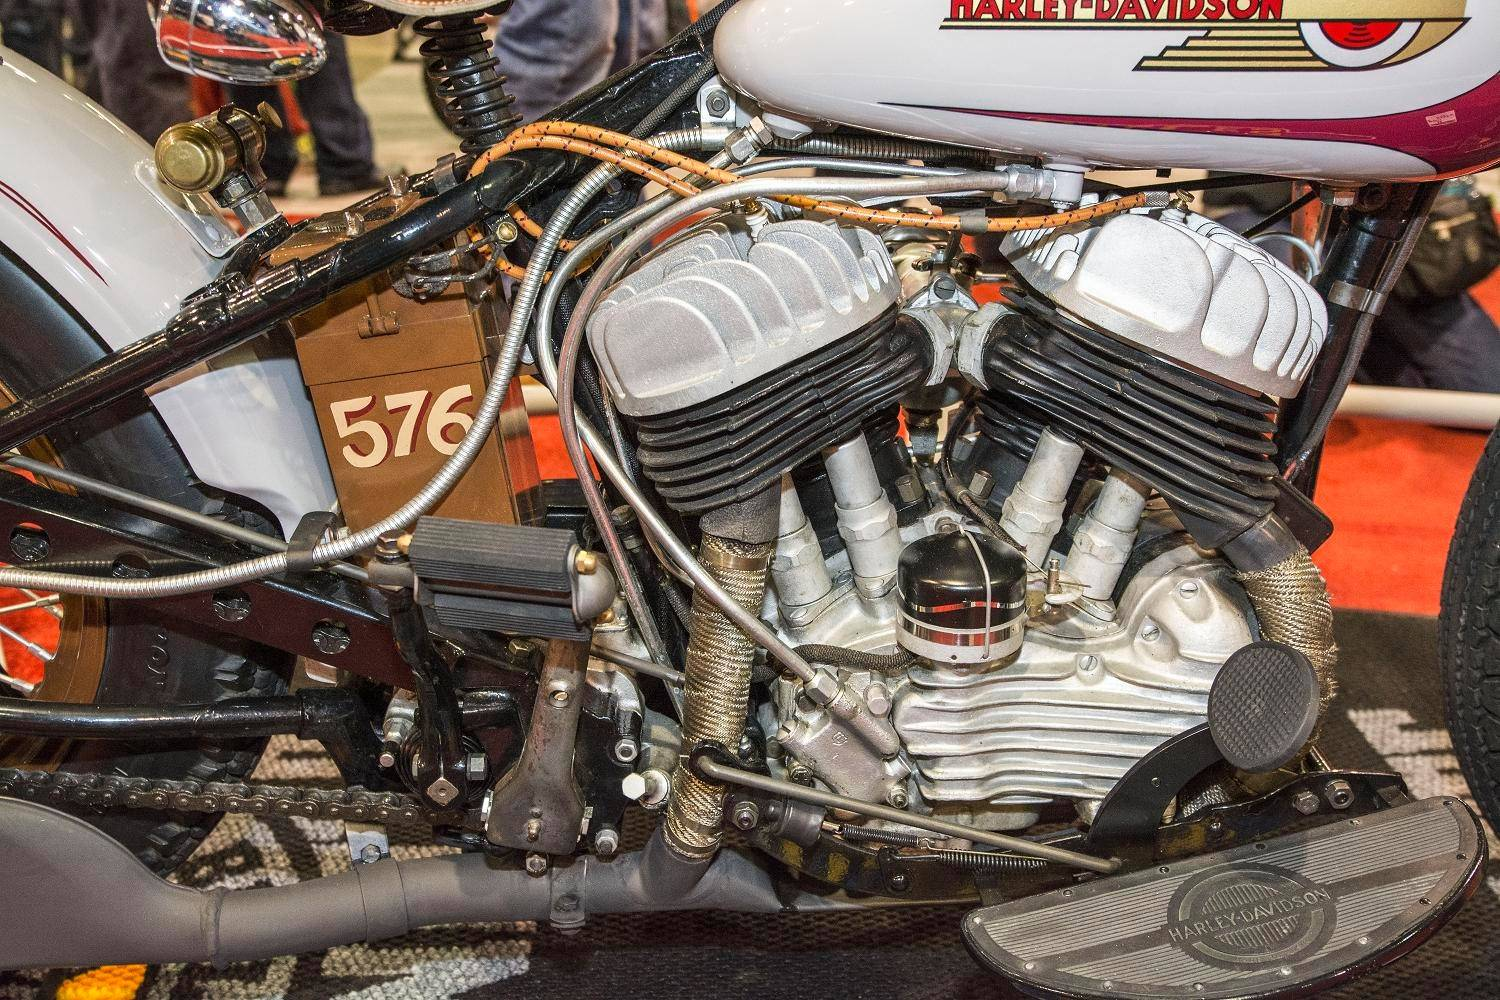 Crabtree's Harley was assembled from a mishmash of parts.